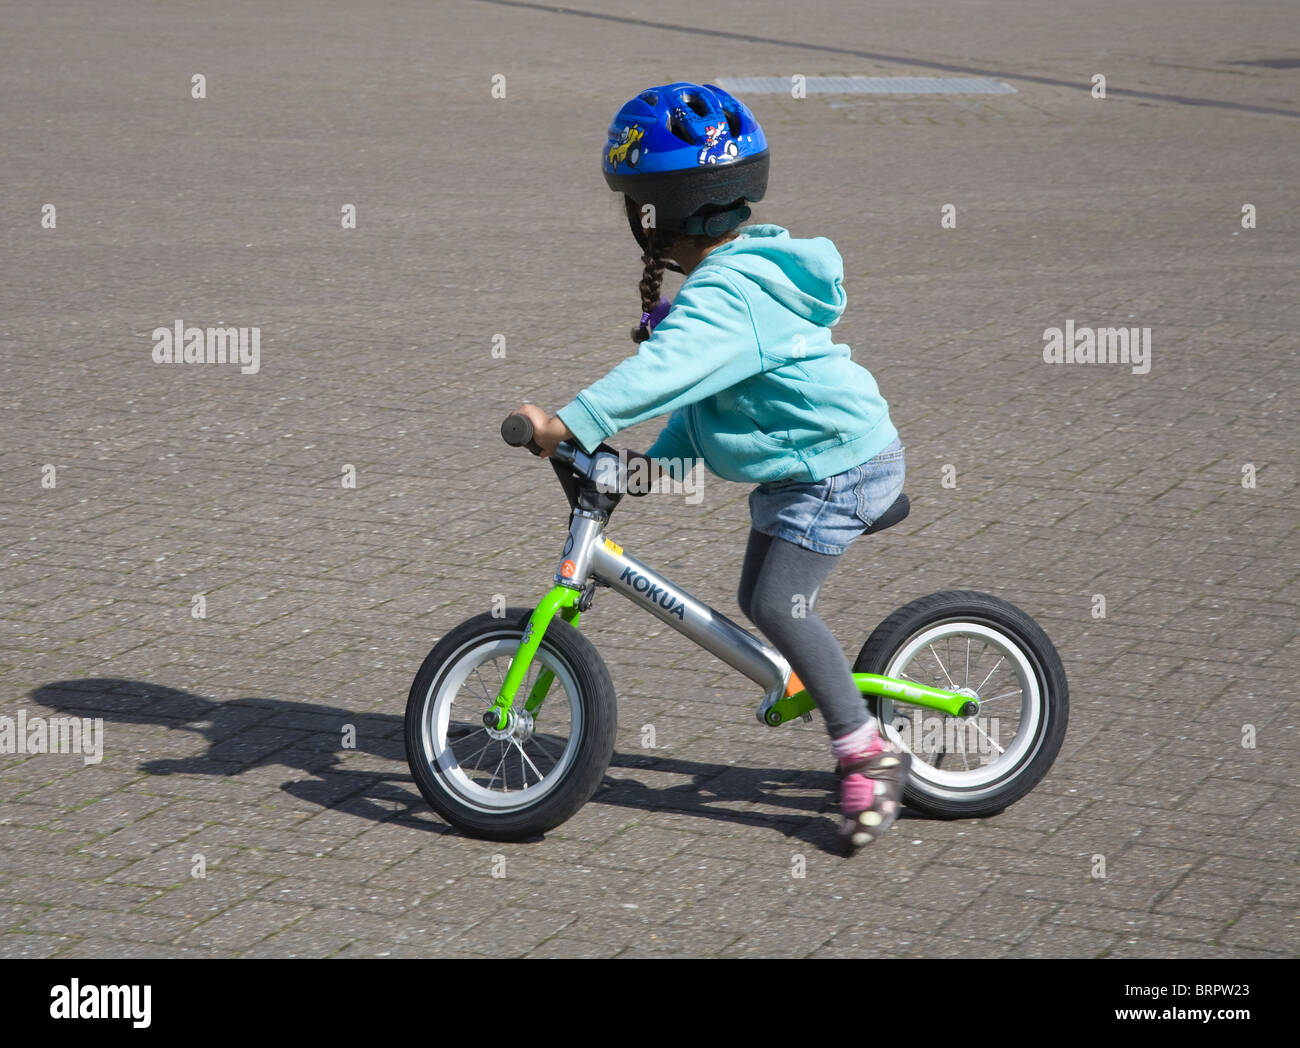 Close up little girl wearing a blue cycling helmet riding a small bicycle - Stock Image